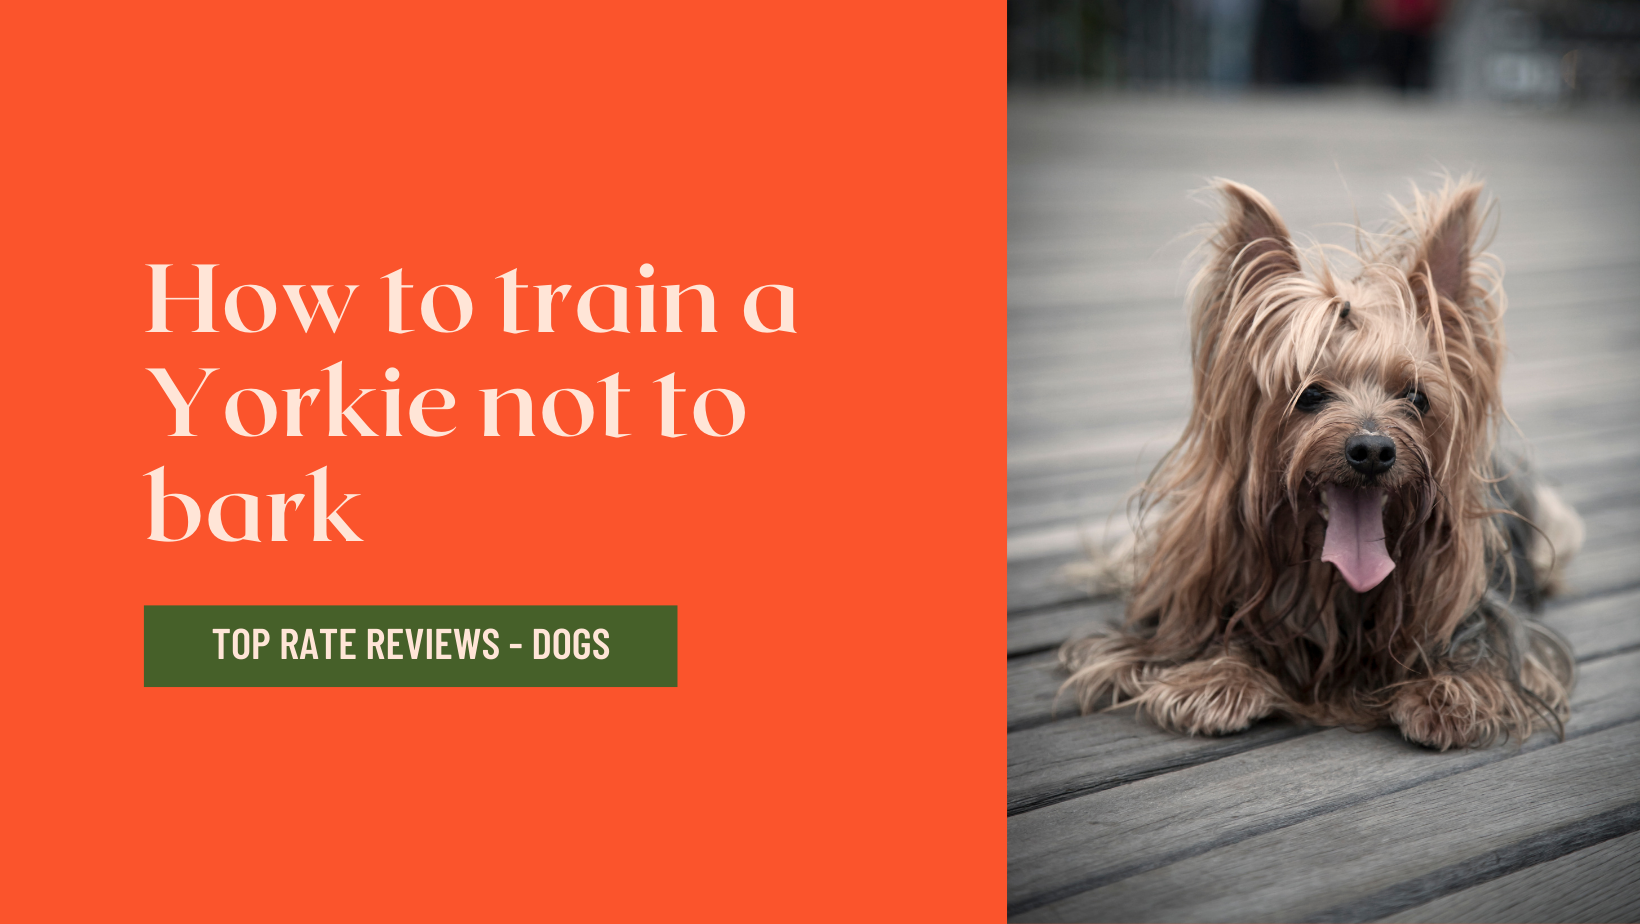 How to train a Yorkie not to bark